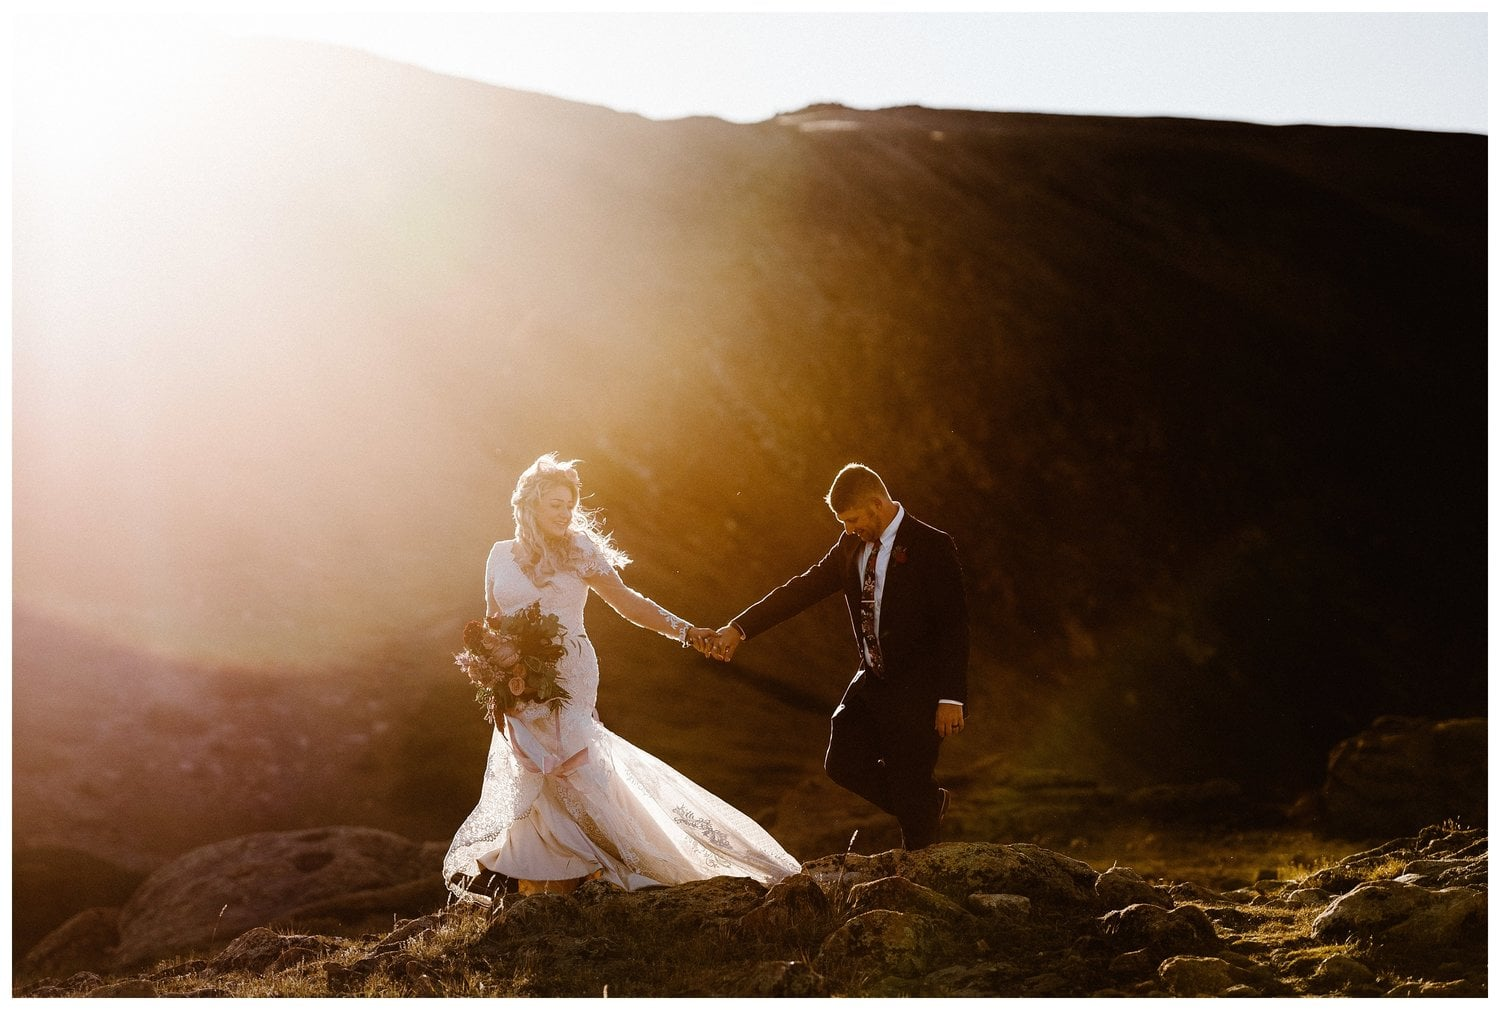 A bride and groom walk hand in hand during sunset.